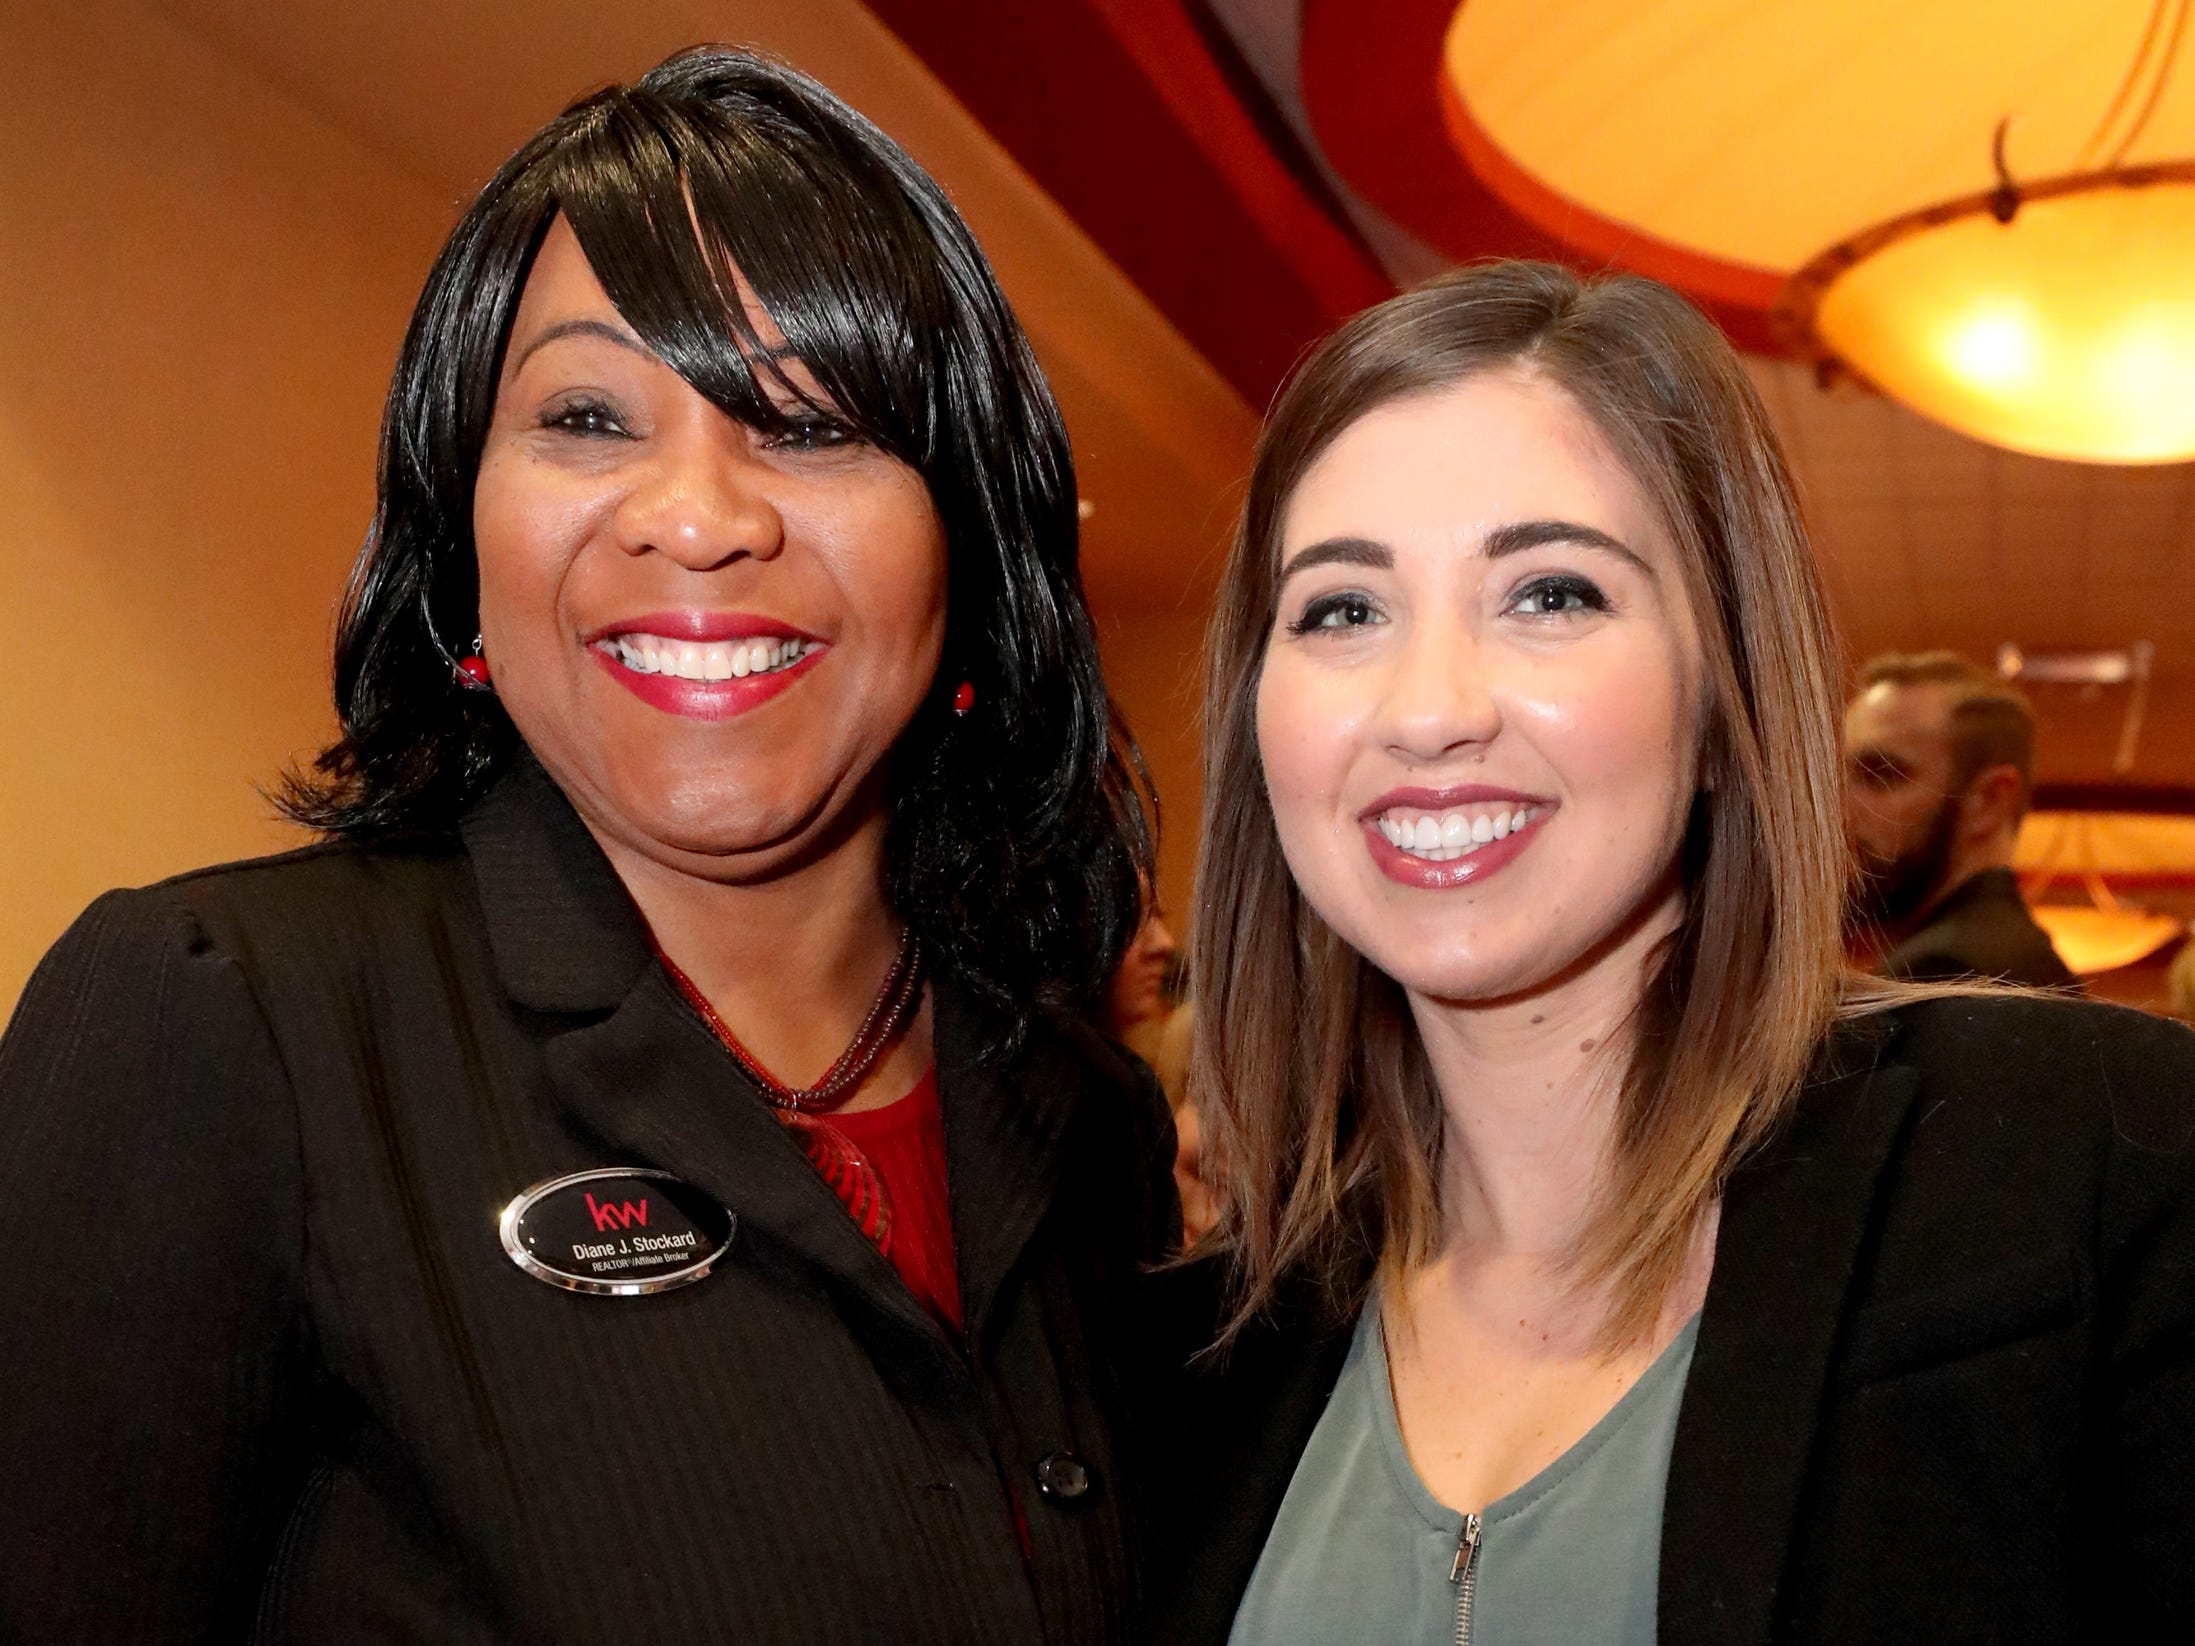 Diane Stockard, left and Tina Thomas at Murfreesboro Magazine's 2019 Women in Business Luncheon on Tuesday, March 12, 2019, at the Embassy Suites Murfreesboro.